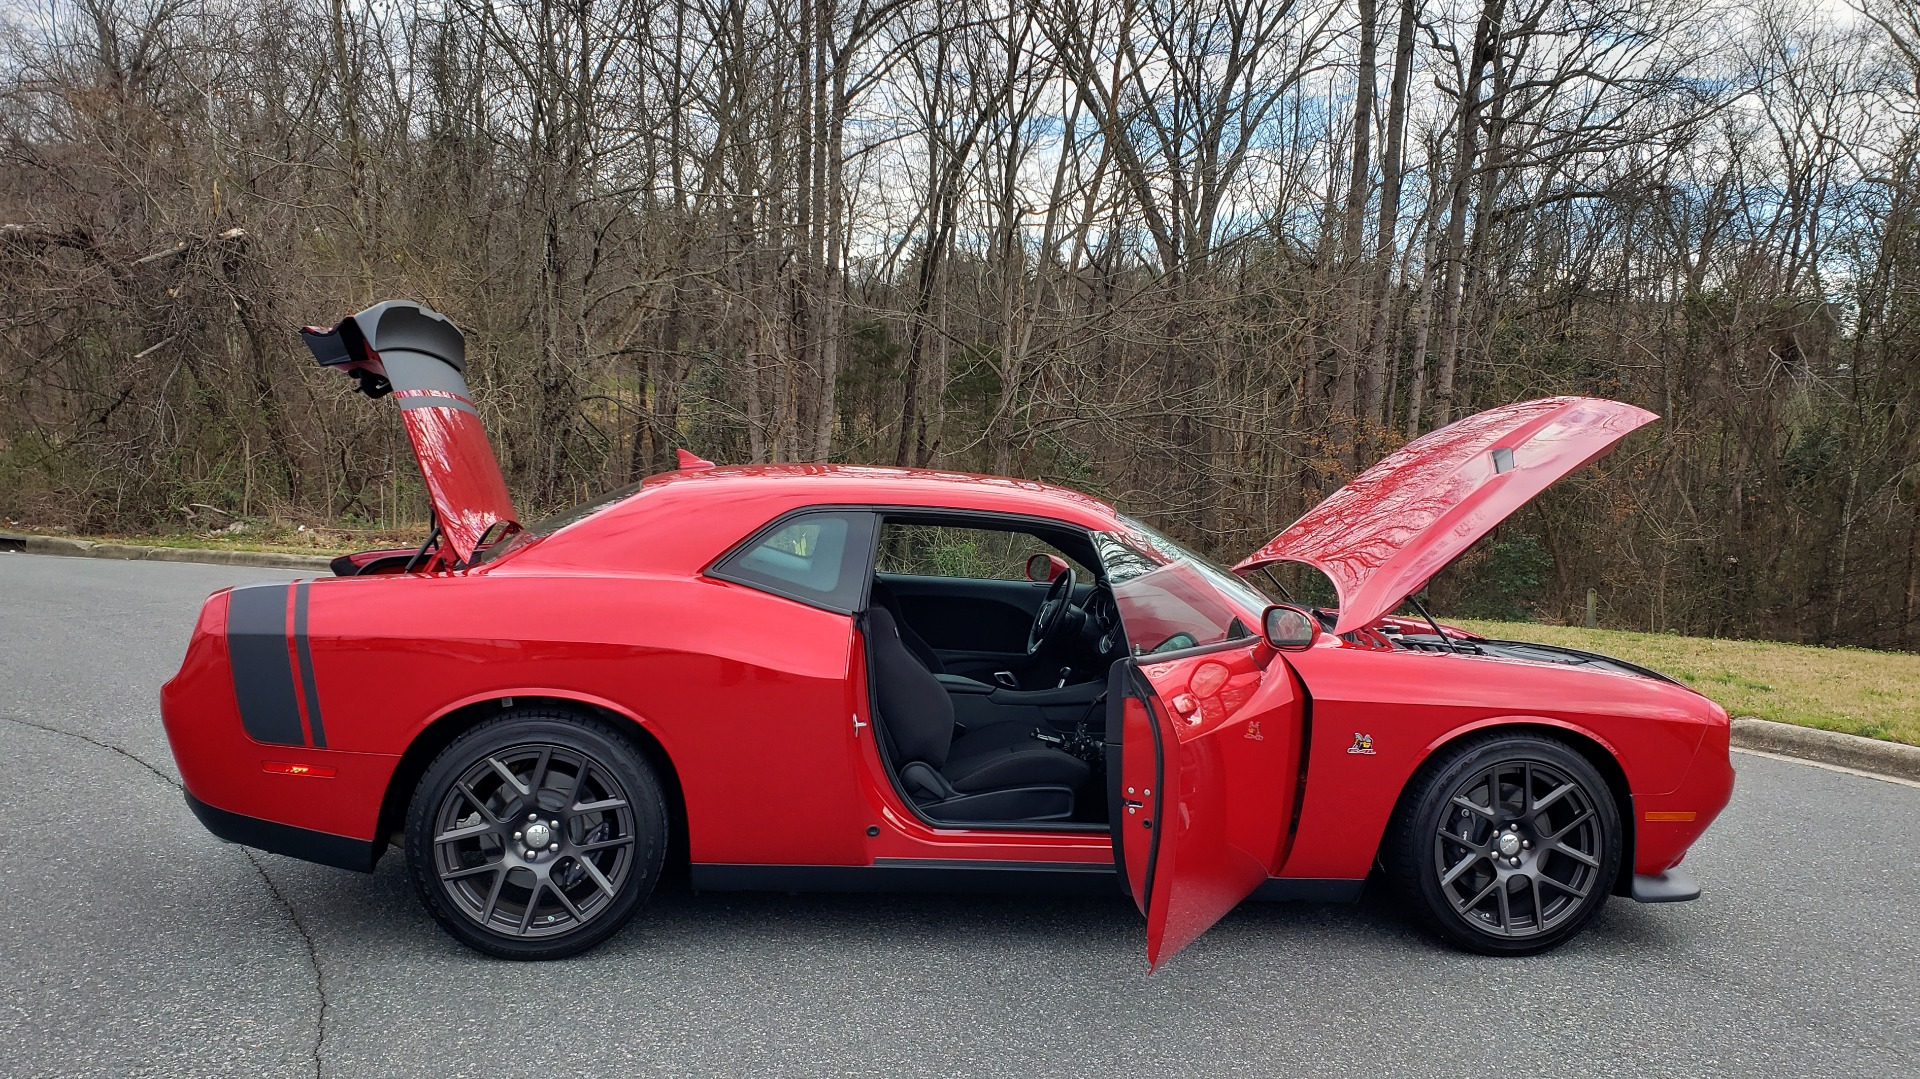 Used 2016 Dodge CHALLENGER R/T SCAT PACK / TECHNOLOGY / ALPINE / 6-SPEED MAN for sale Sold at Formula Imports in Charlotte NC 28227 13